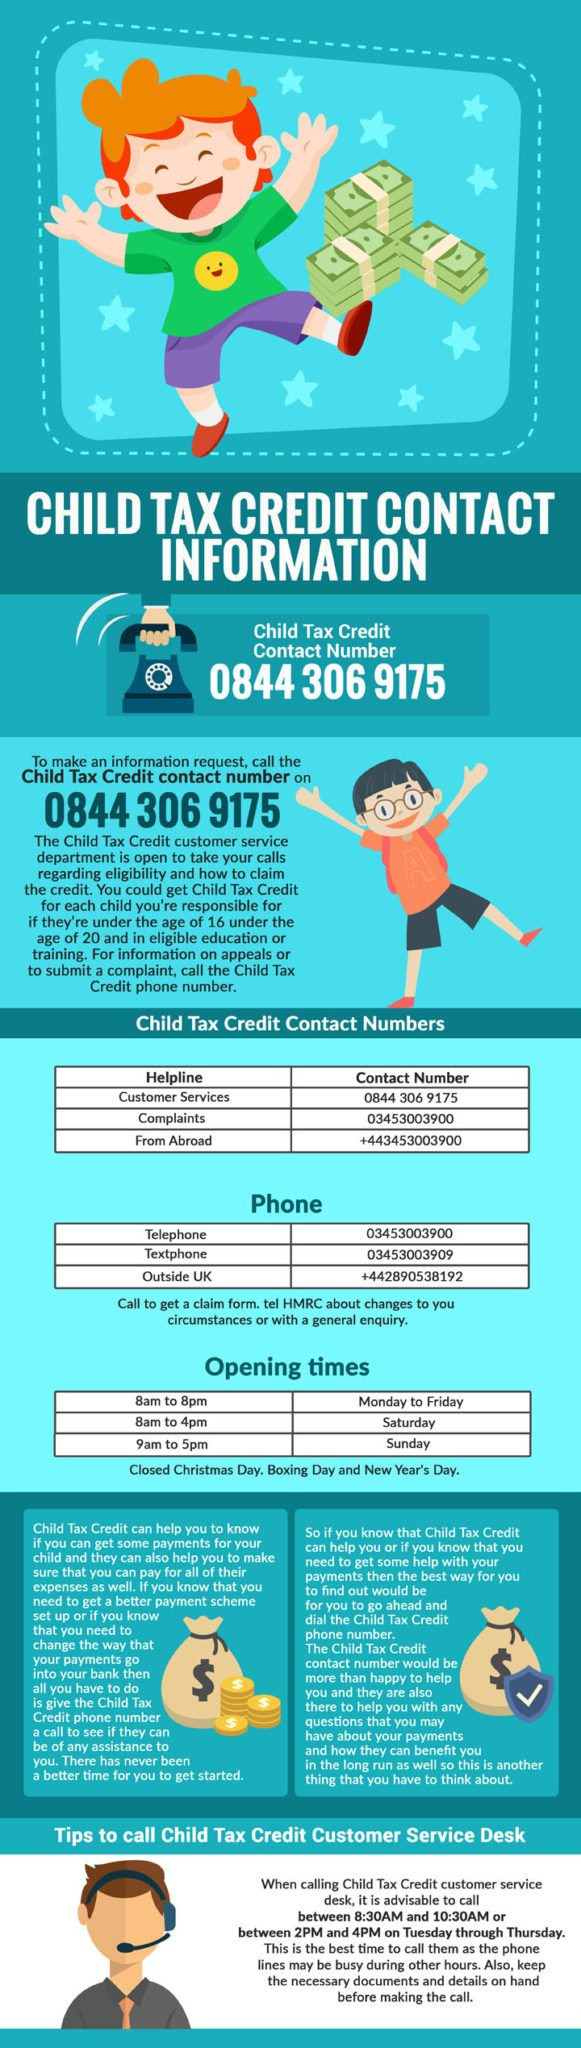 Child Tax Credit Customer Service